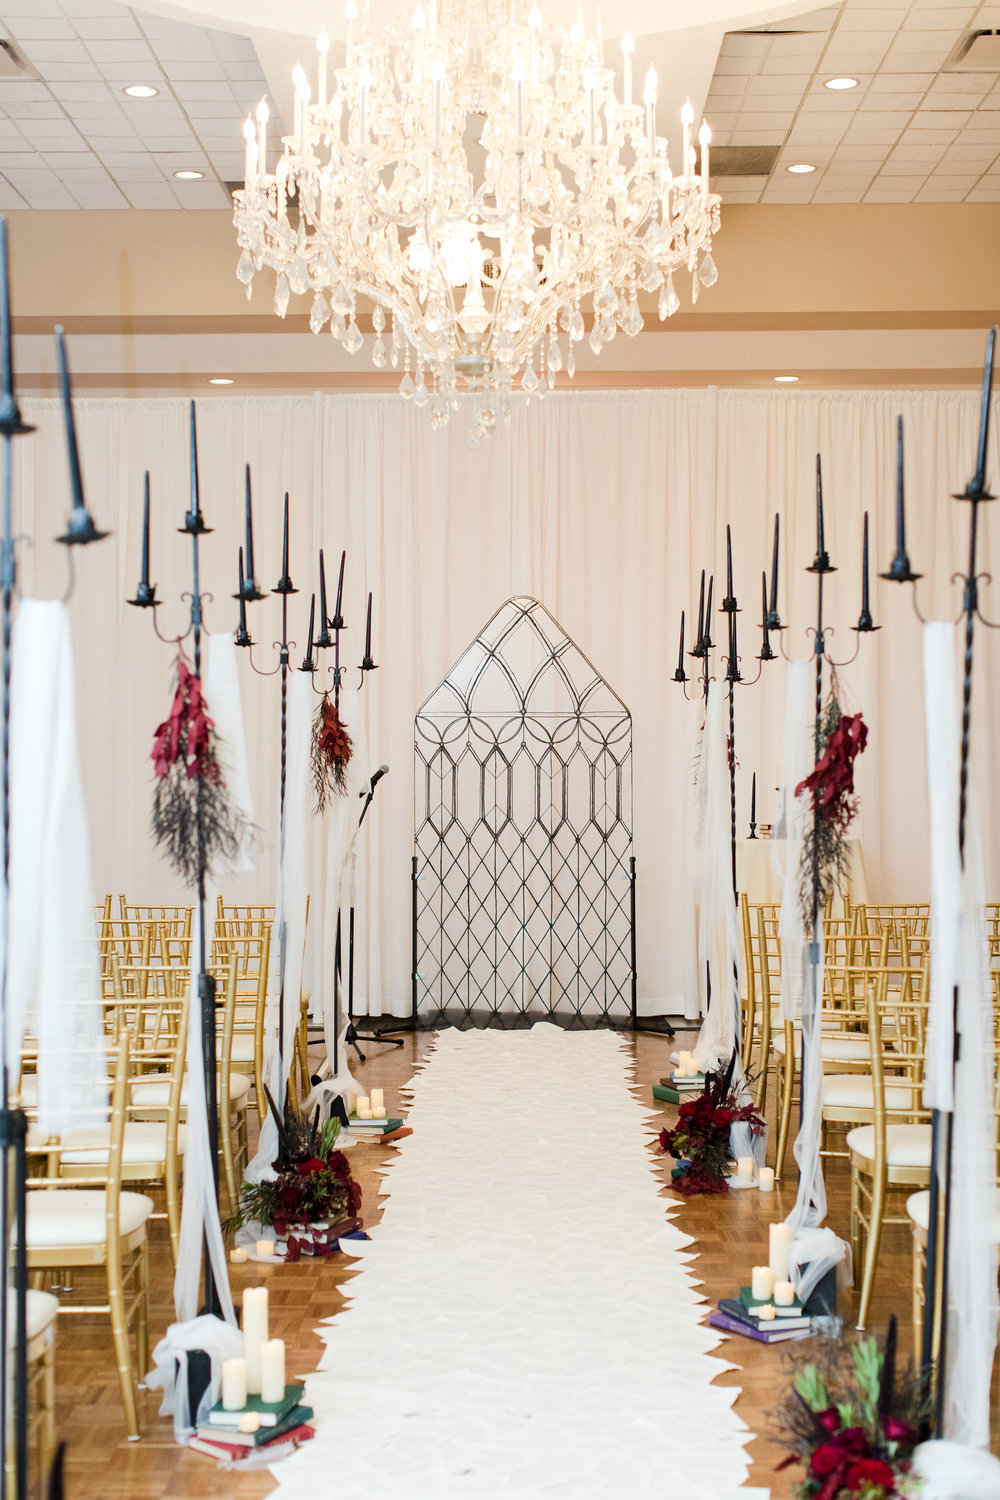 Book page aisle runner with seasonal fall floral atop books leading up to a castle window ceremony backdrop inspired by beauty and the beast for library inspired wedding at Buona Sera Palazzo